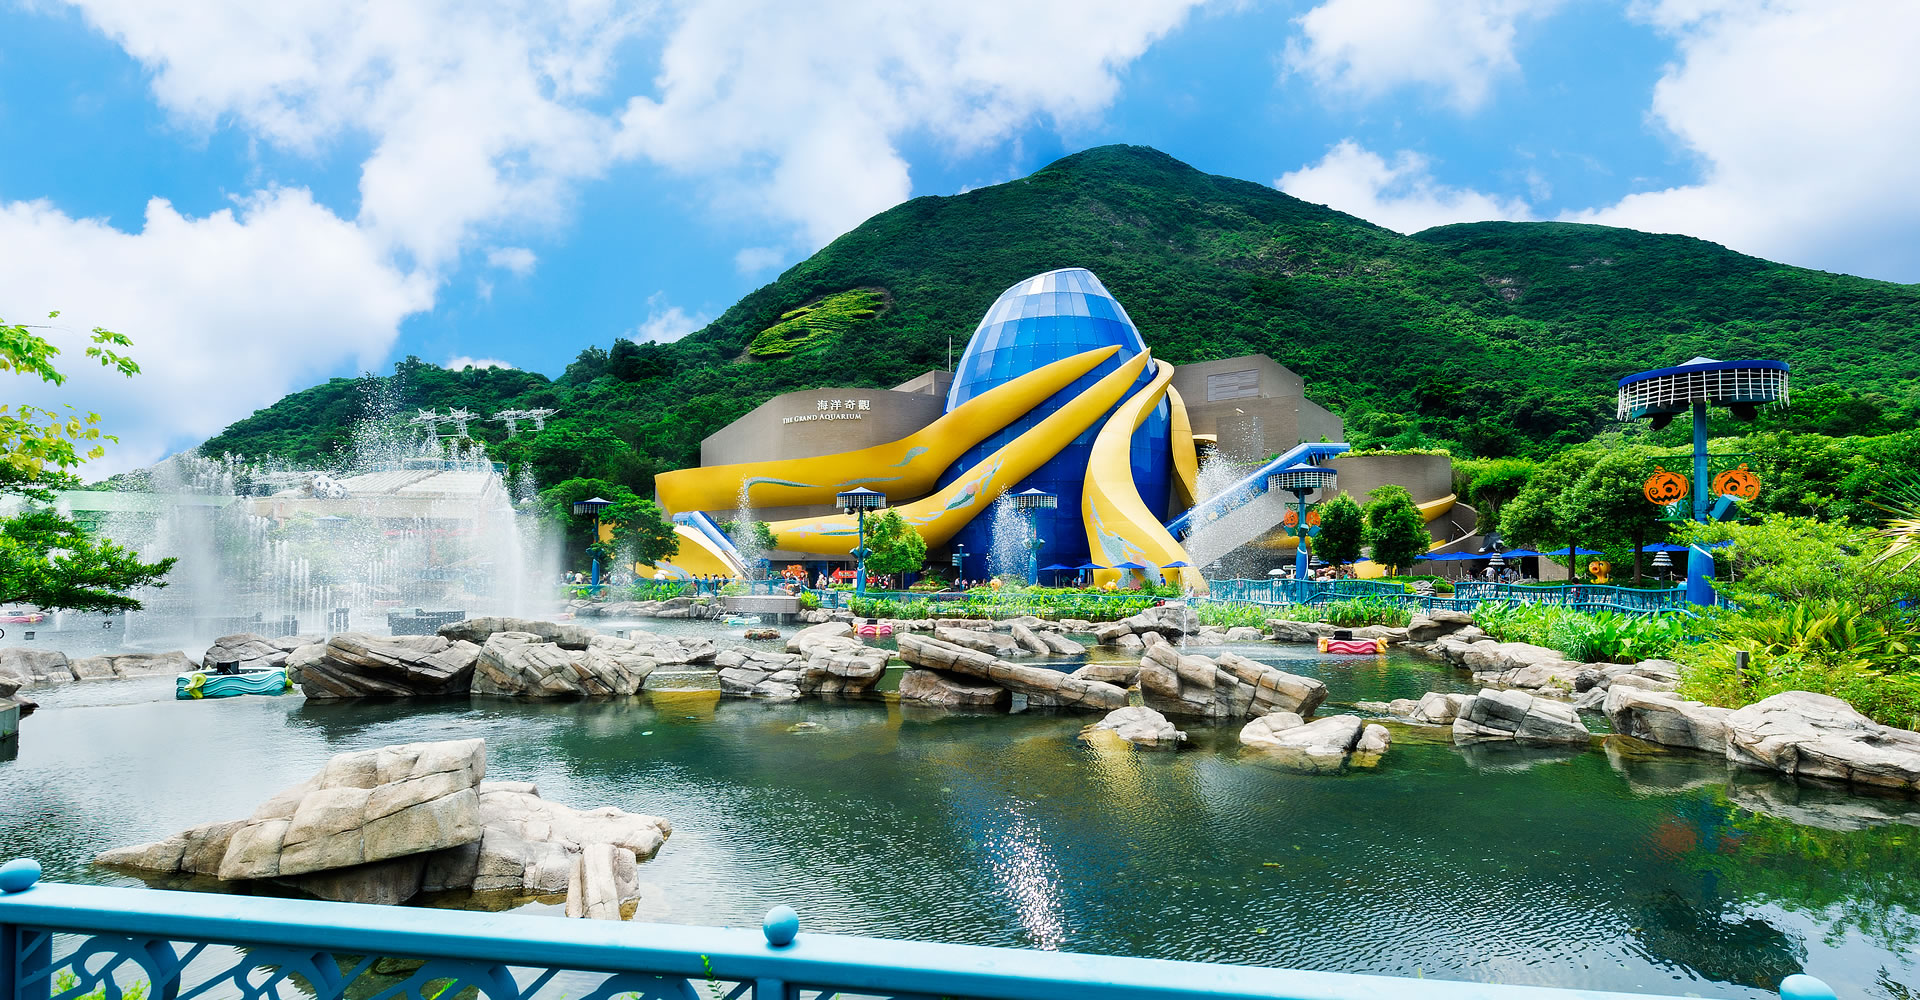 https://media.oceanpark.com.hk/files/s3fs-public/GrandAquarium.jpg